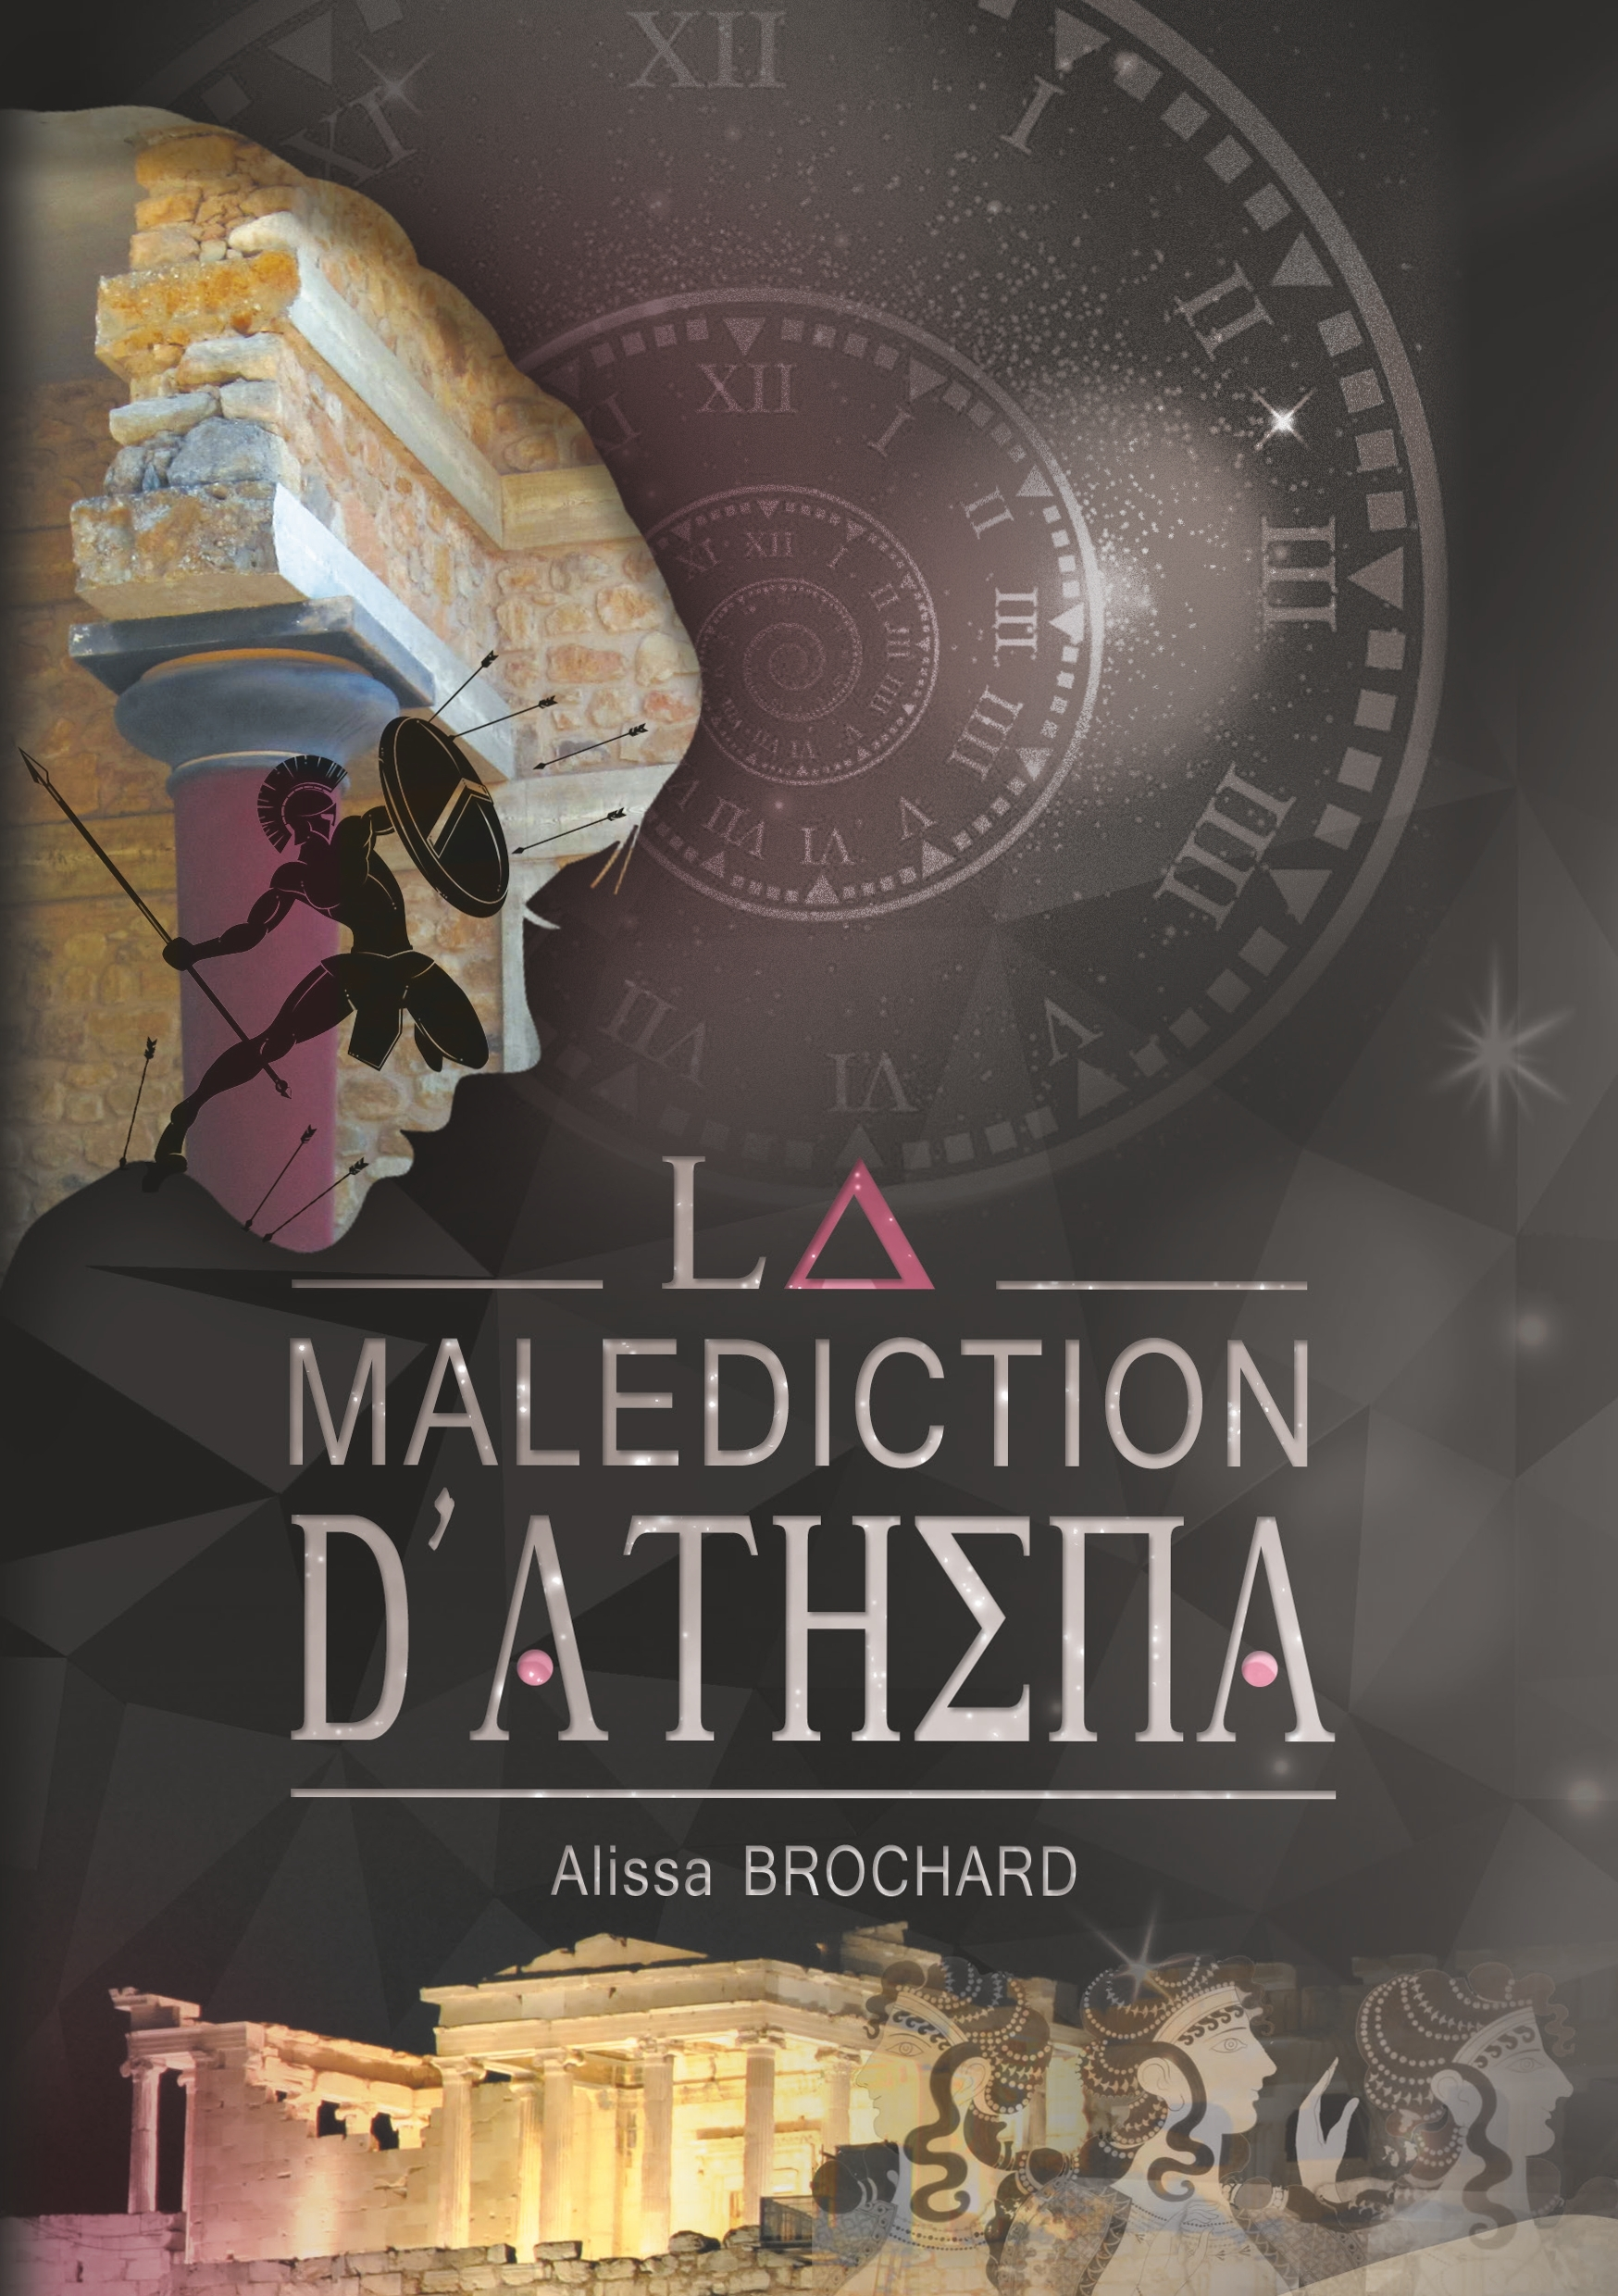 LA MALEDICTION D'ATHENA